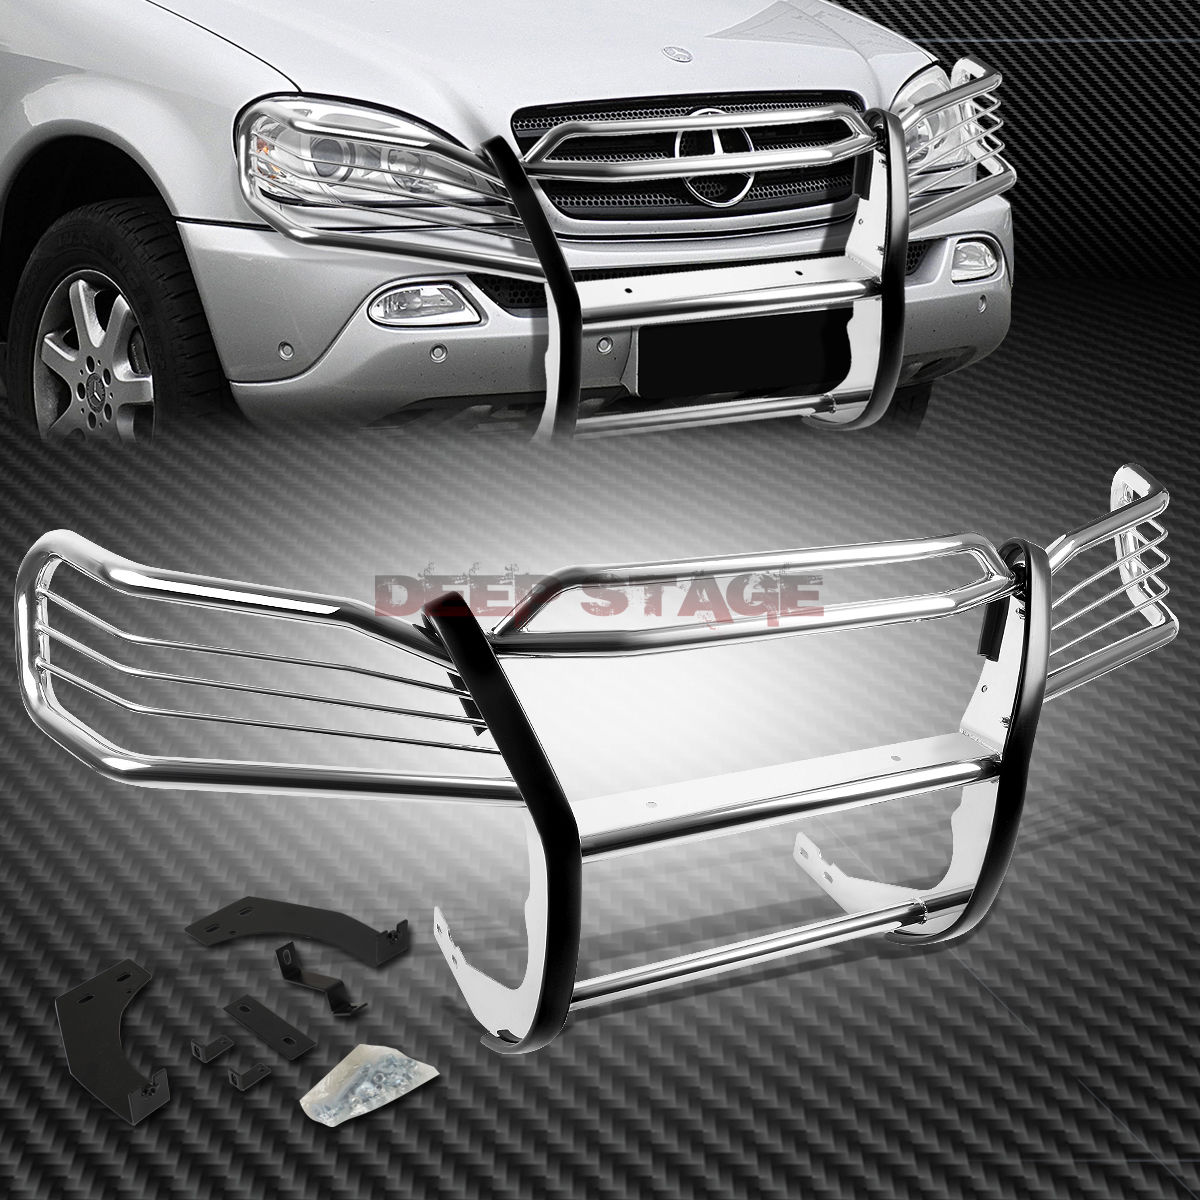 MERCEDES M-CLASS FRONT GUARD W163 クロムステンレスフロントバンパーグリルガードfor STAINLESS CHROME STEEL W163 グリル M-CLASS GRILL MERCEDES FOR BUMPER 98-05 98-05